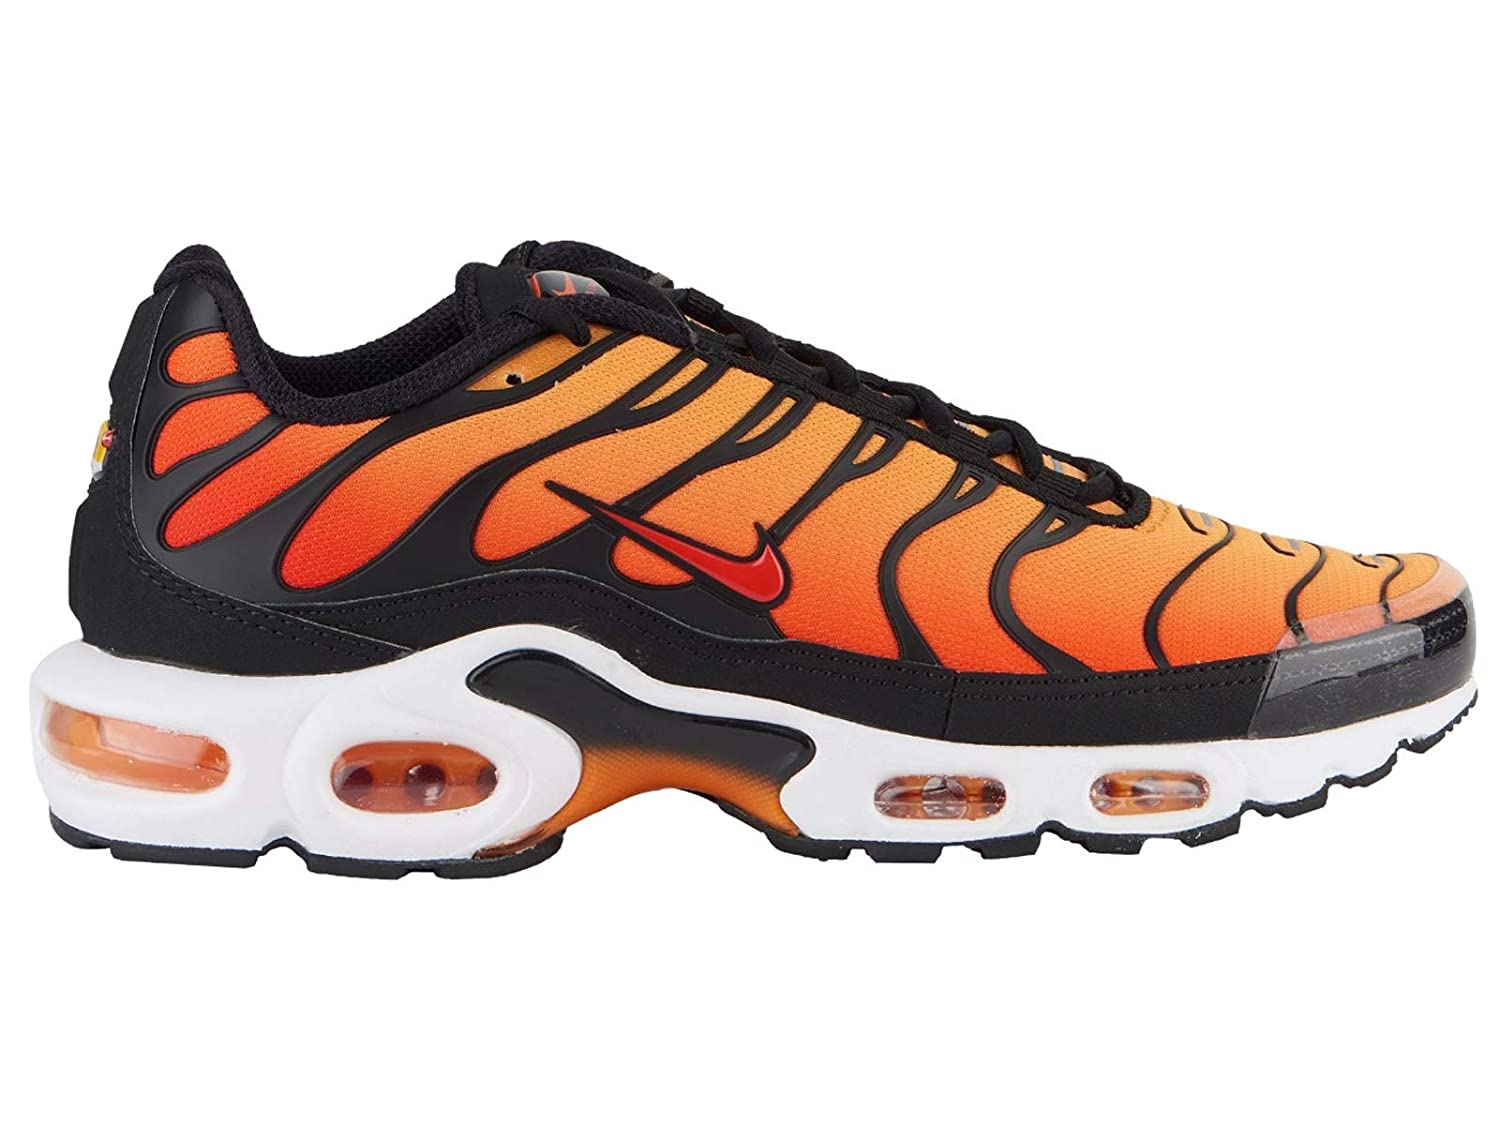 separation shoes d7587 fd5d2 Amazon.com | Nike Air Max Plus Og Mens Running Trainers ...